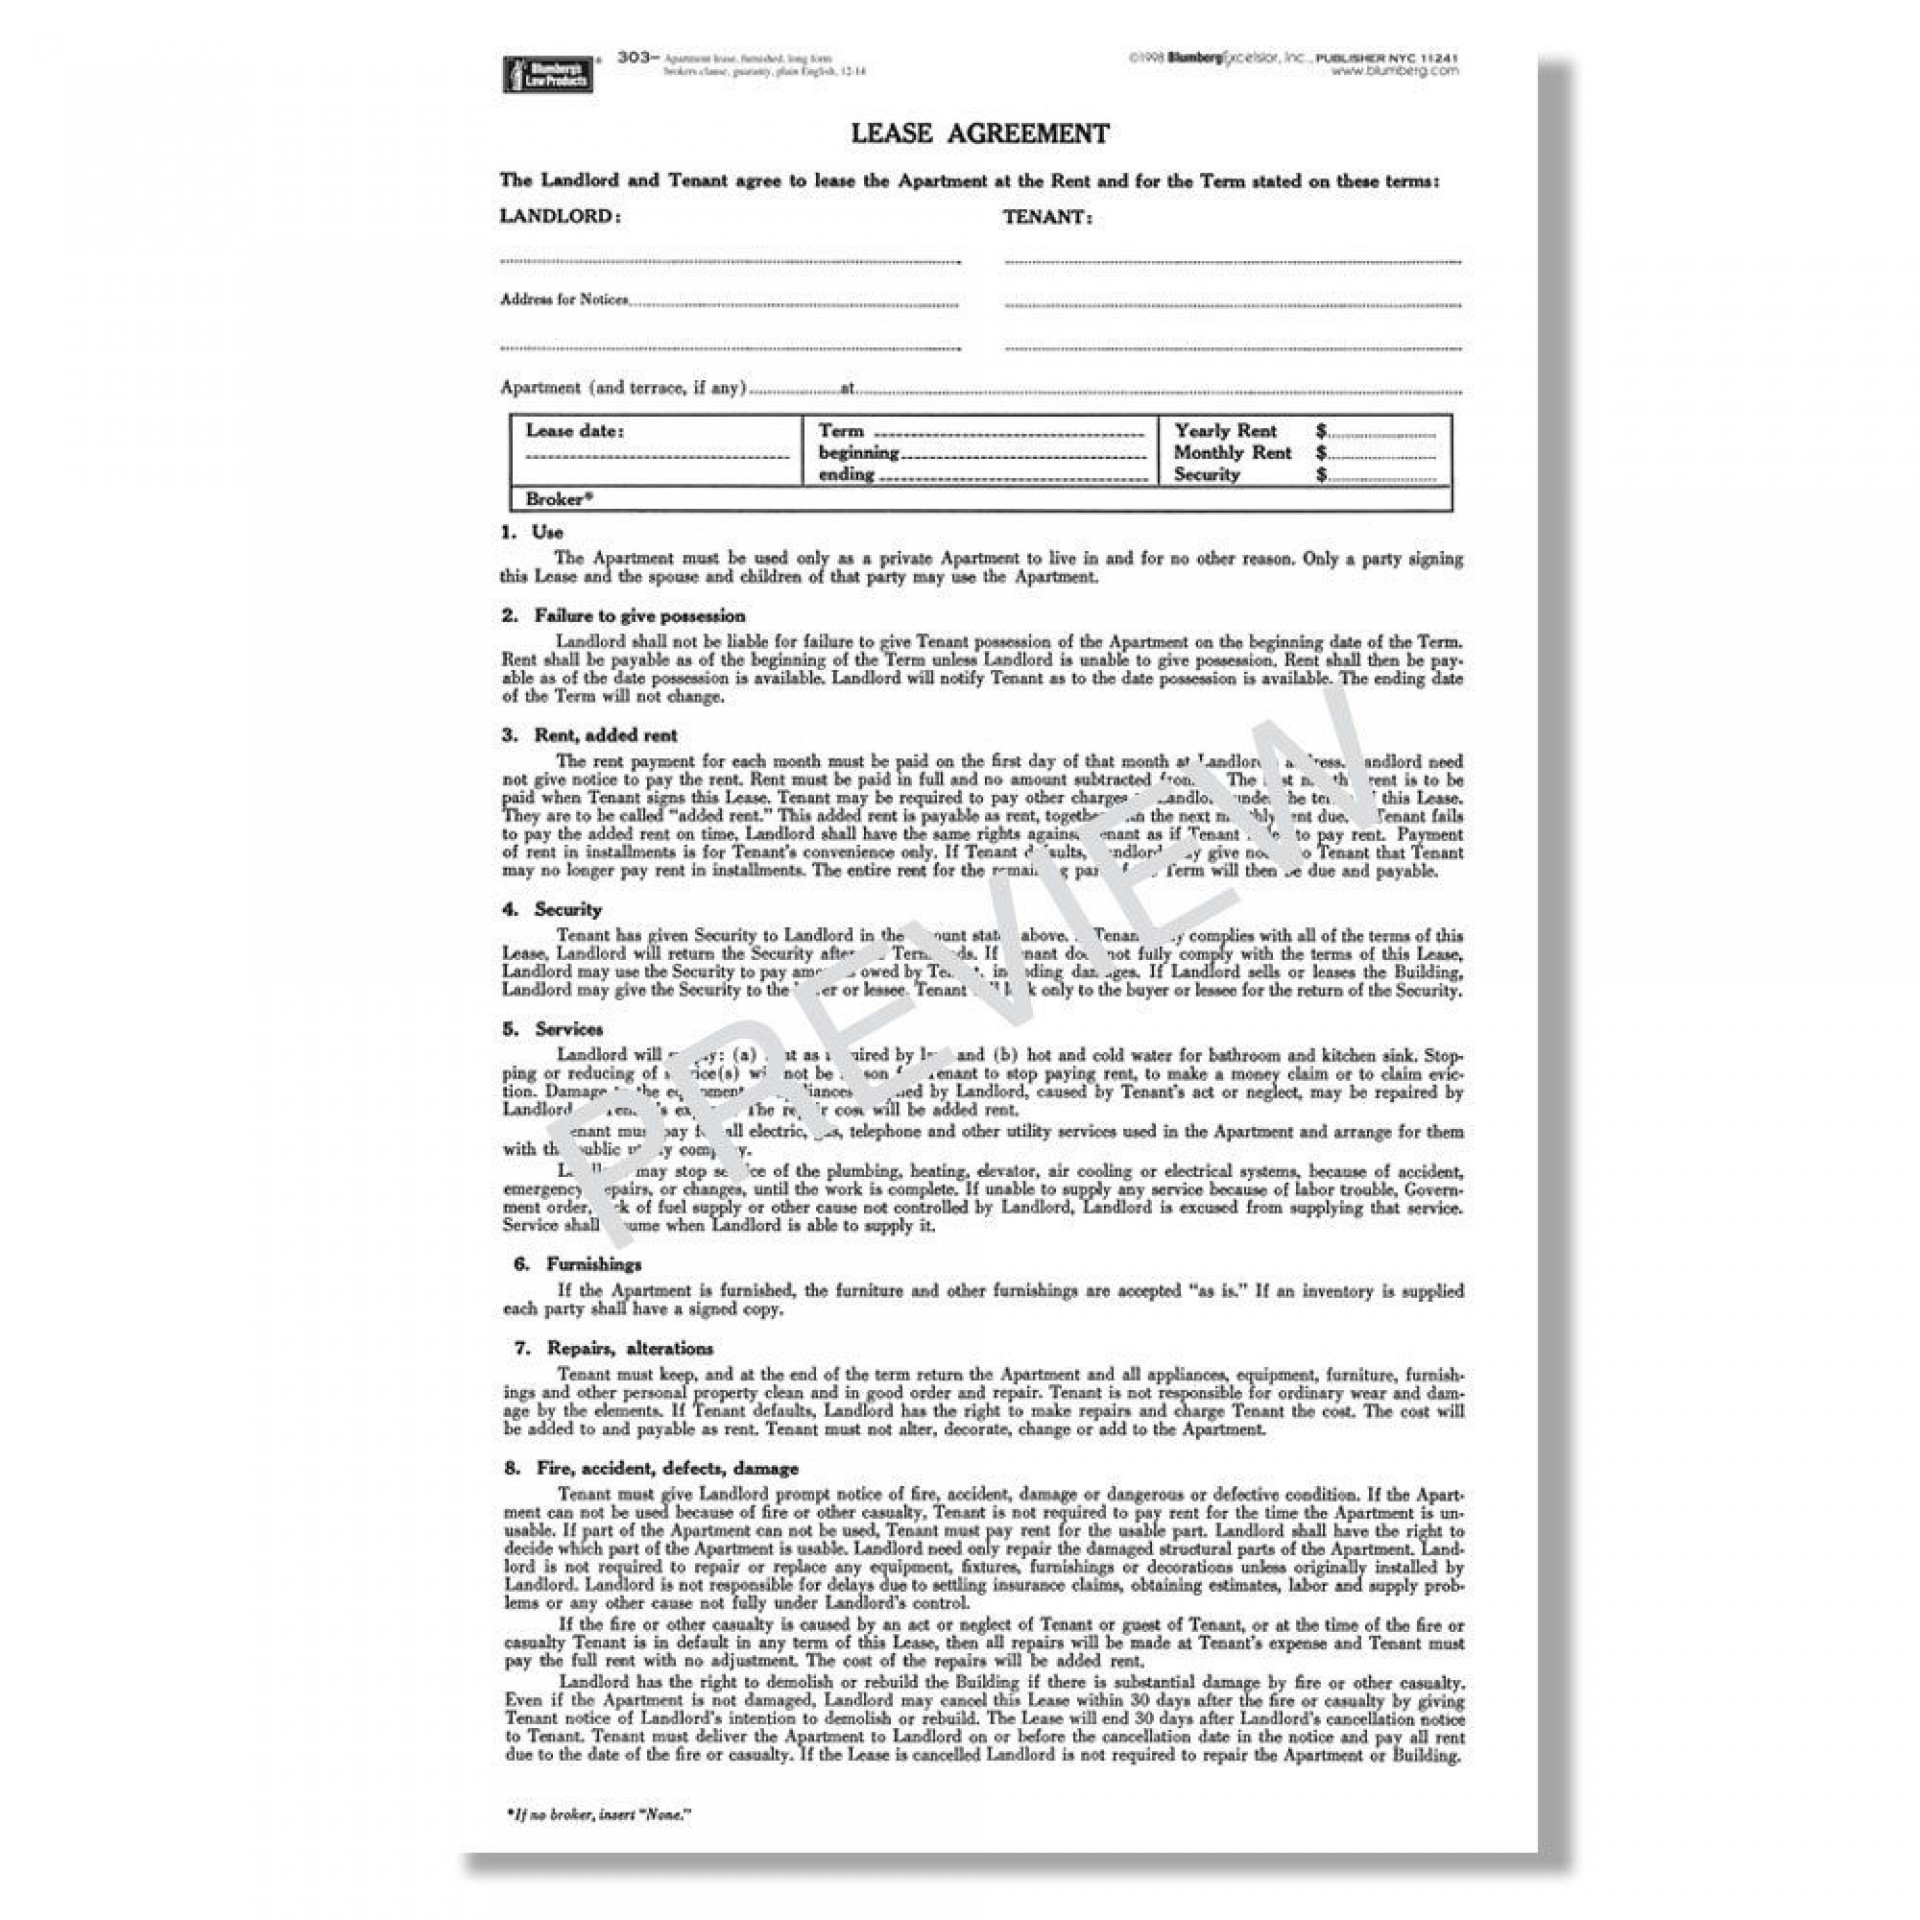 000 Excellent Apartment Rental Agreement Form Highest Quality  Forms Lease Ontario Format Simple1920